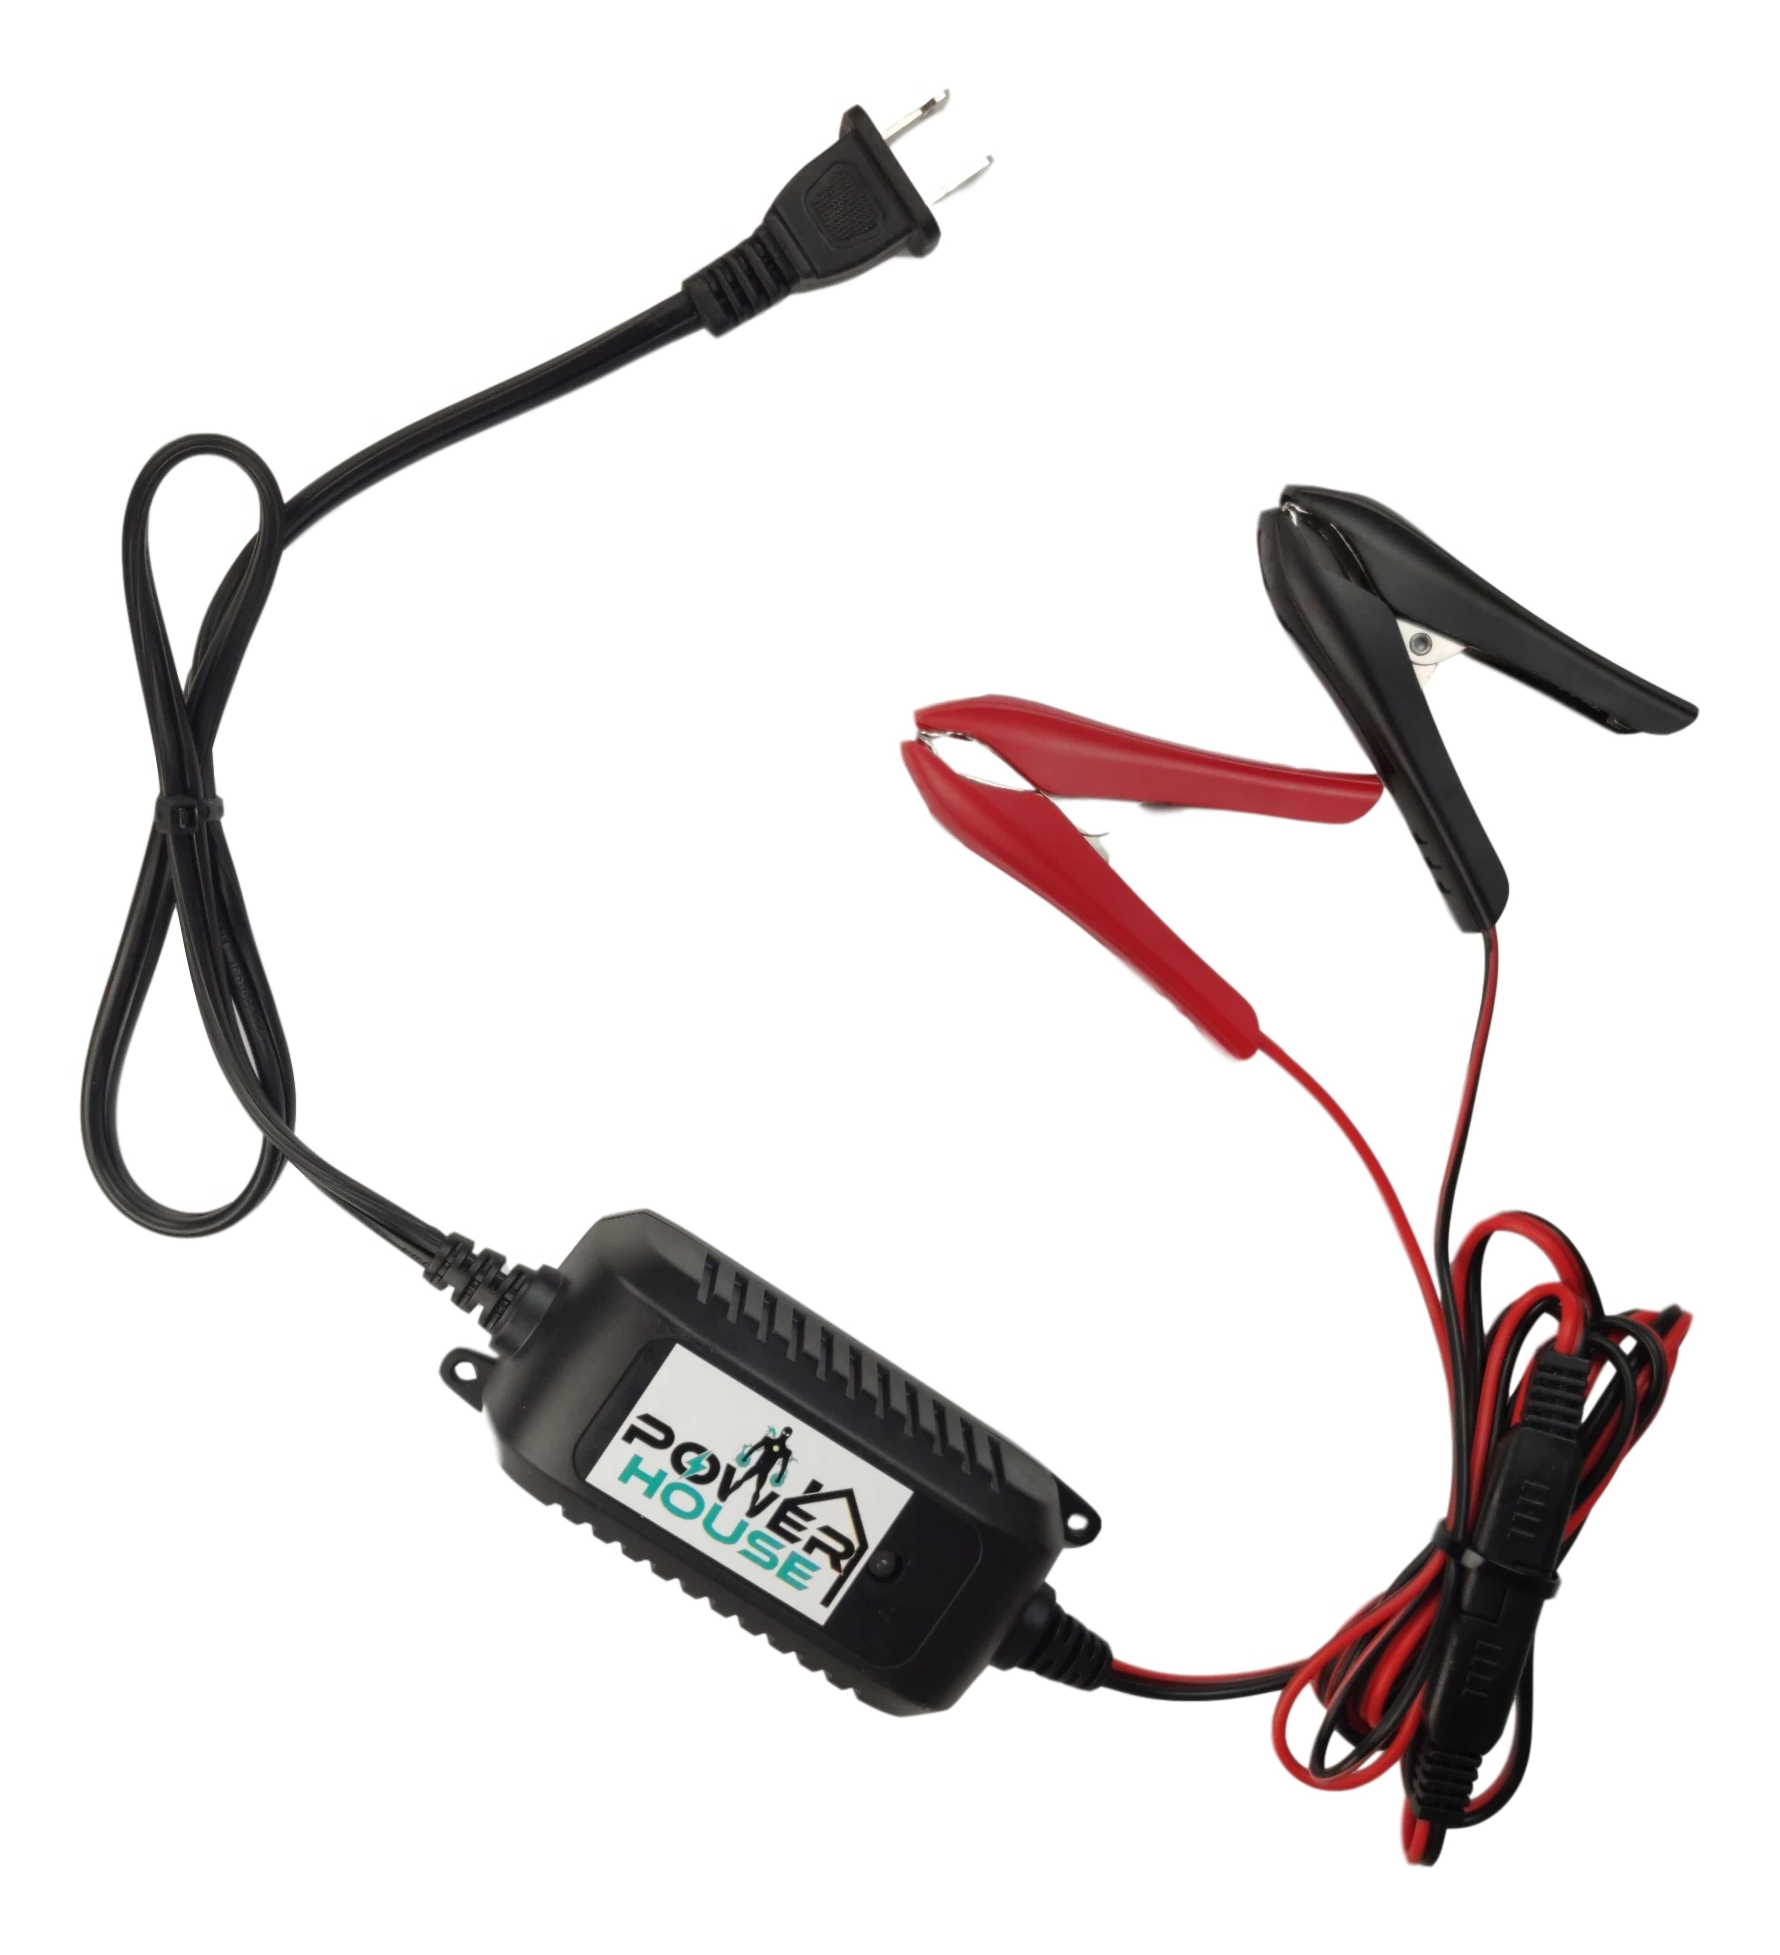 12v 1 5amp Smart Fully Automatic Battery Charger Maintainer For Cars Cutting Edge Power